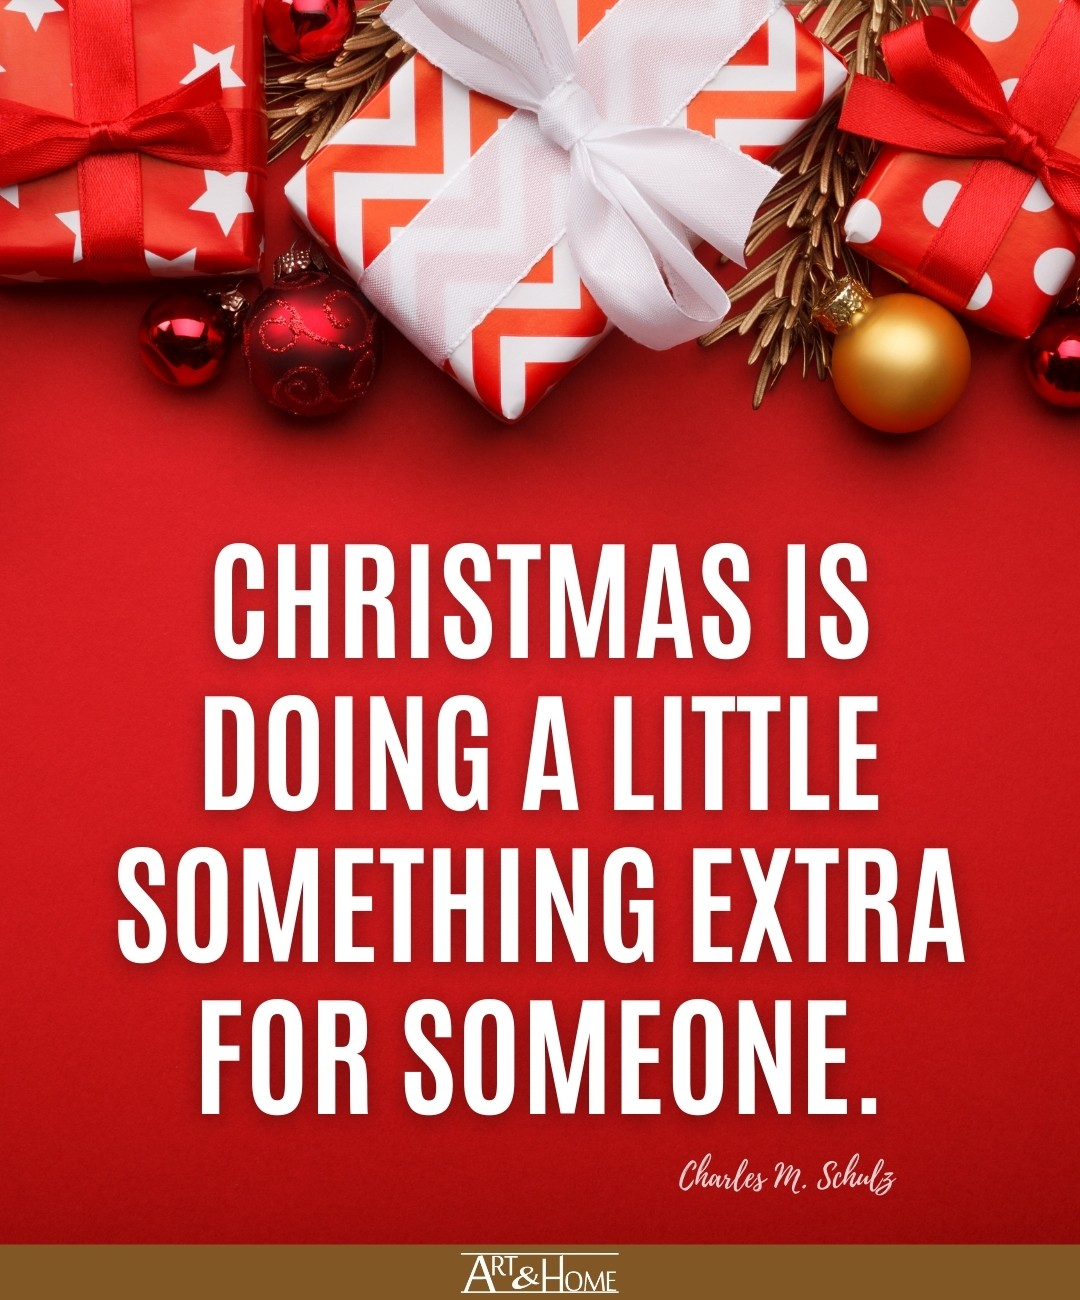 Charles Schulz Quote About Christmas